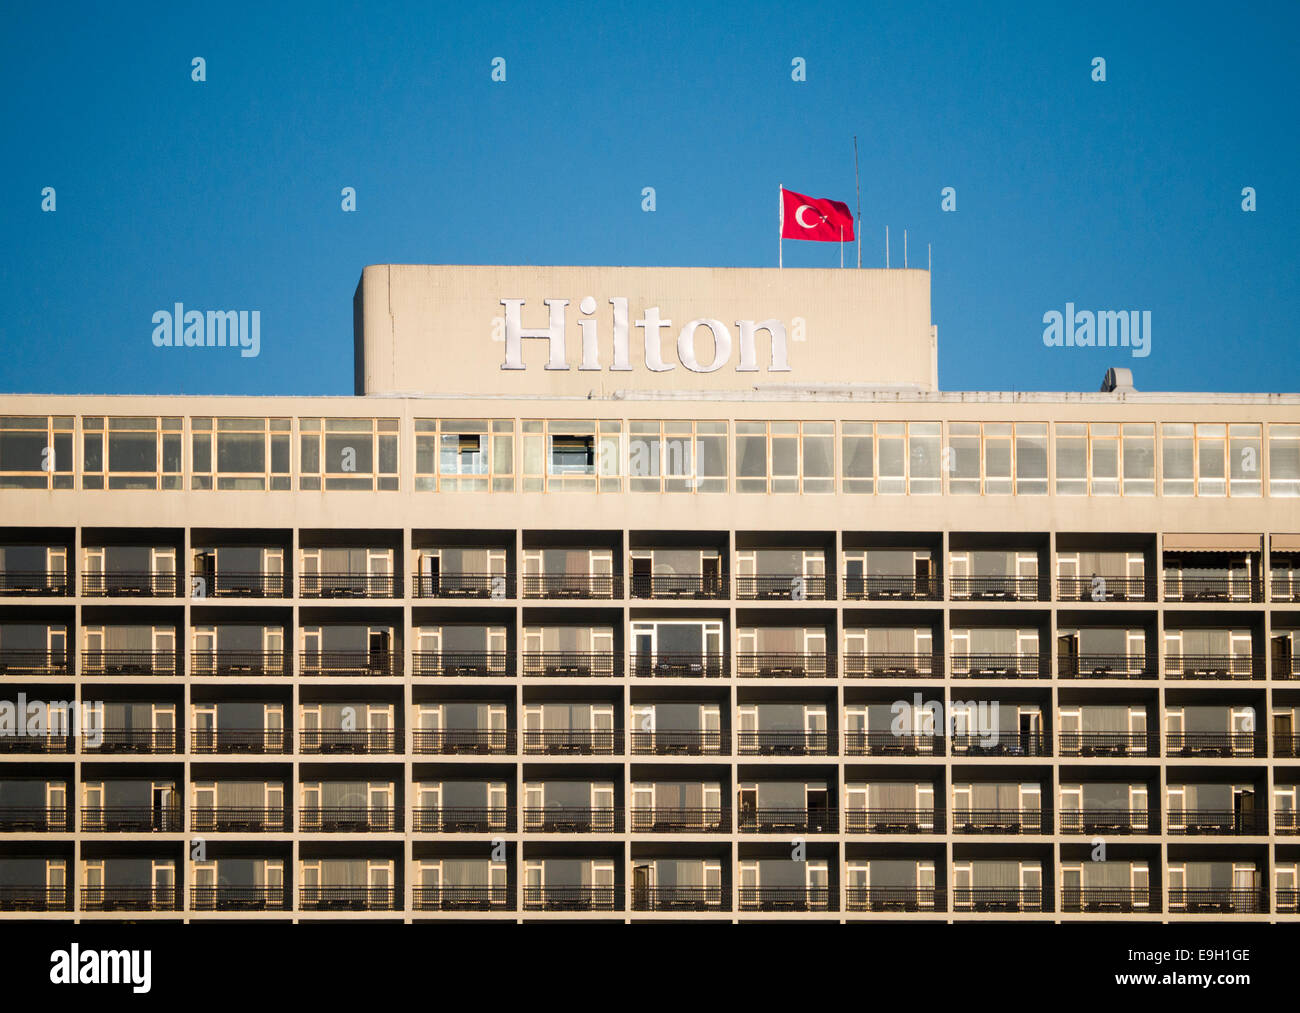 Hilton Hotel in Istanbul - Stock Image